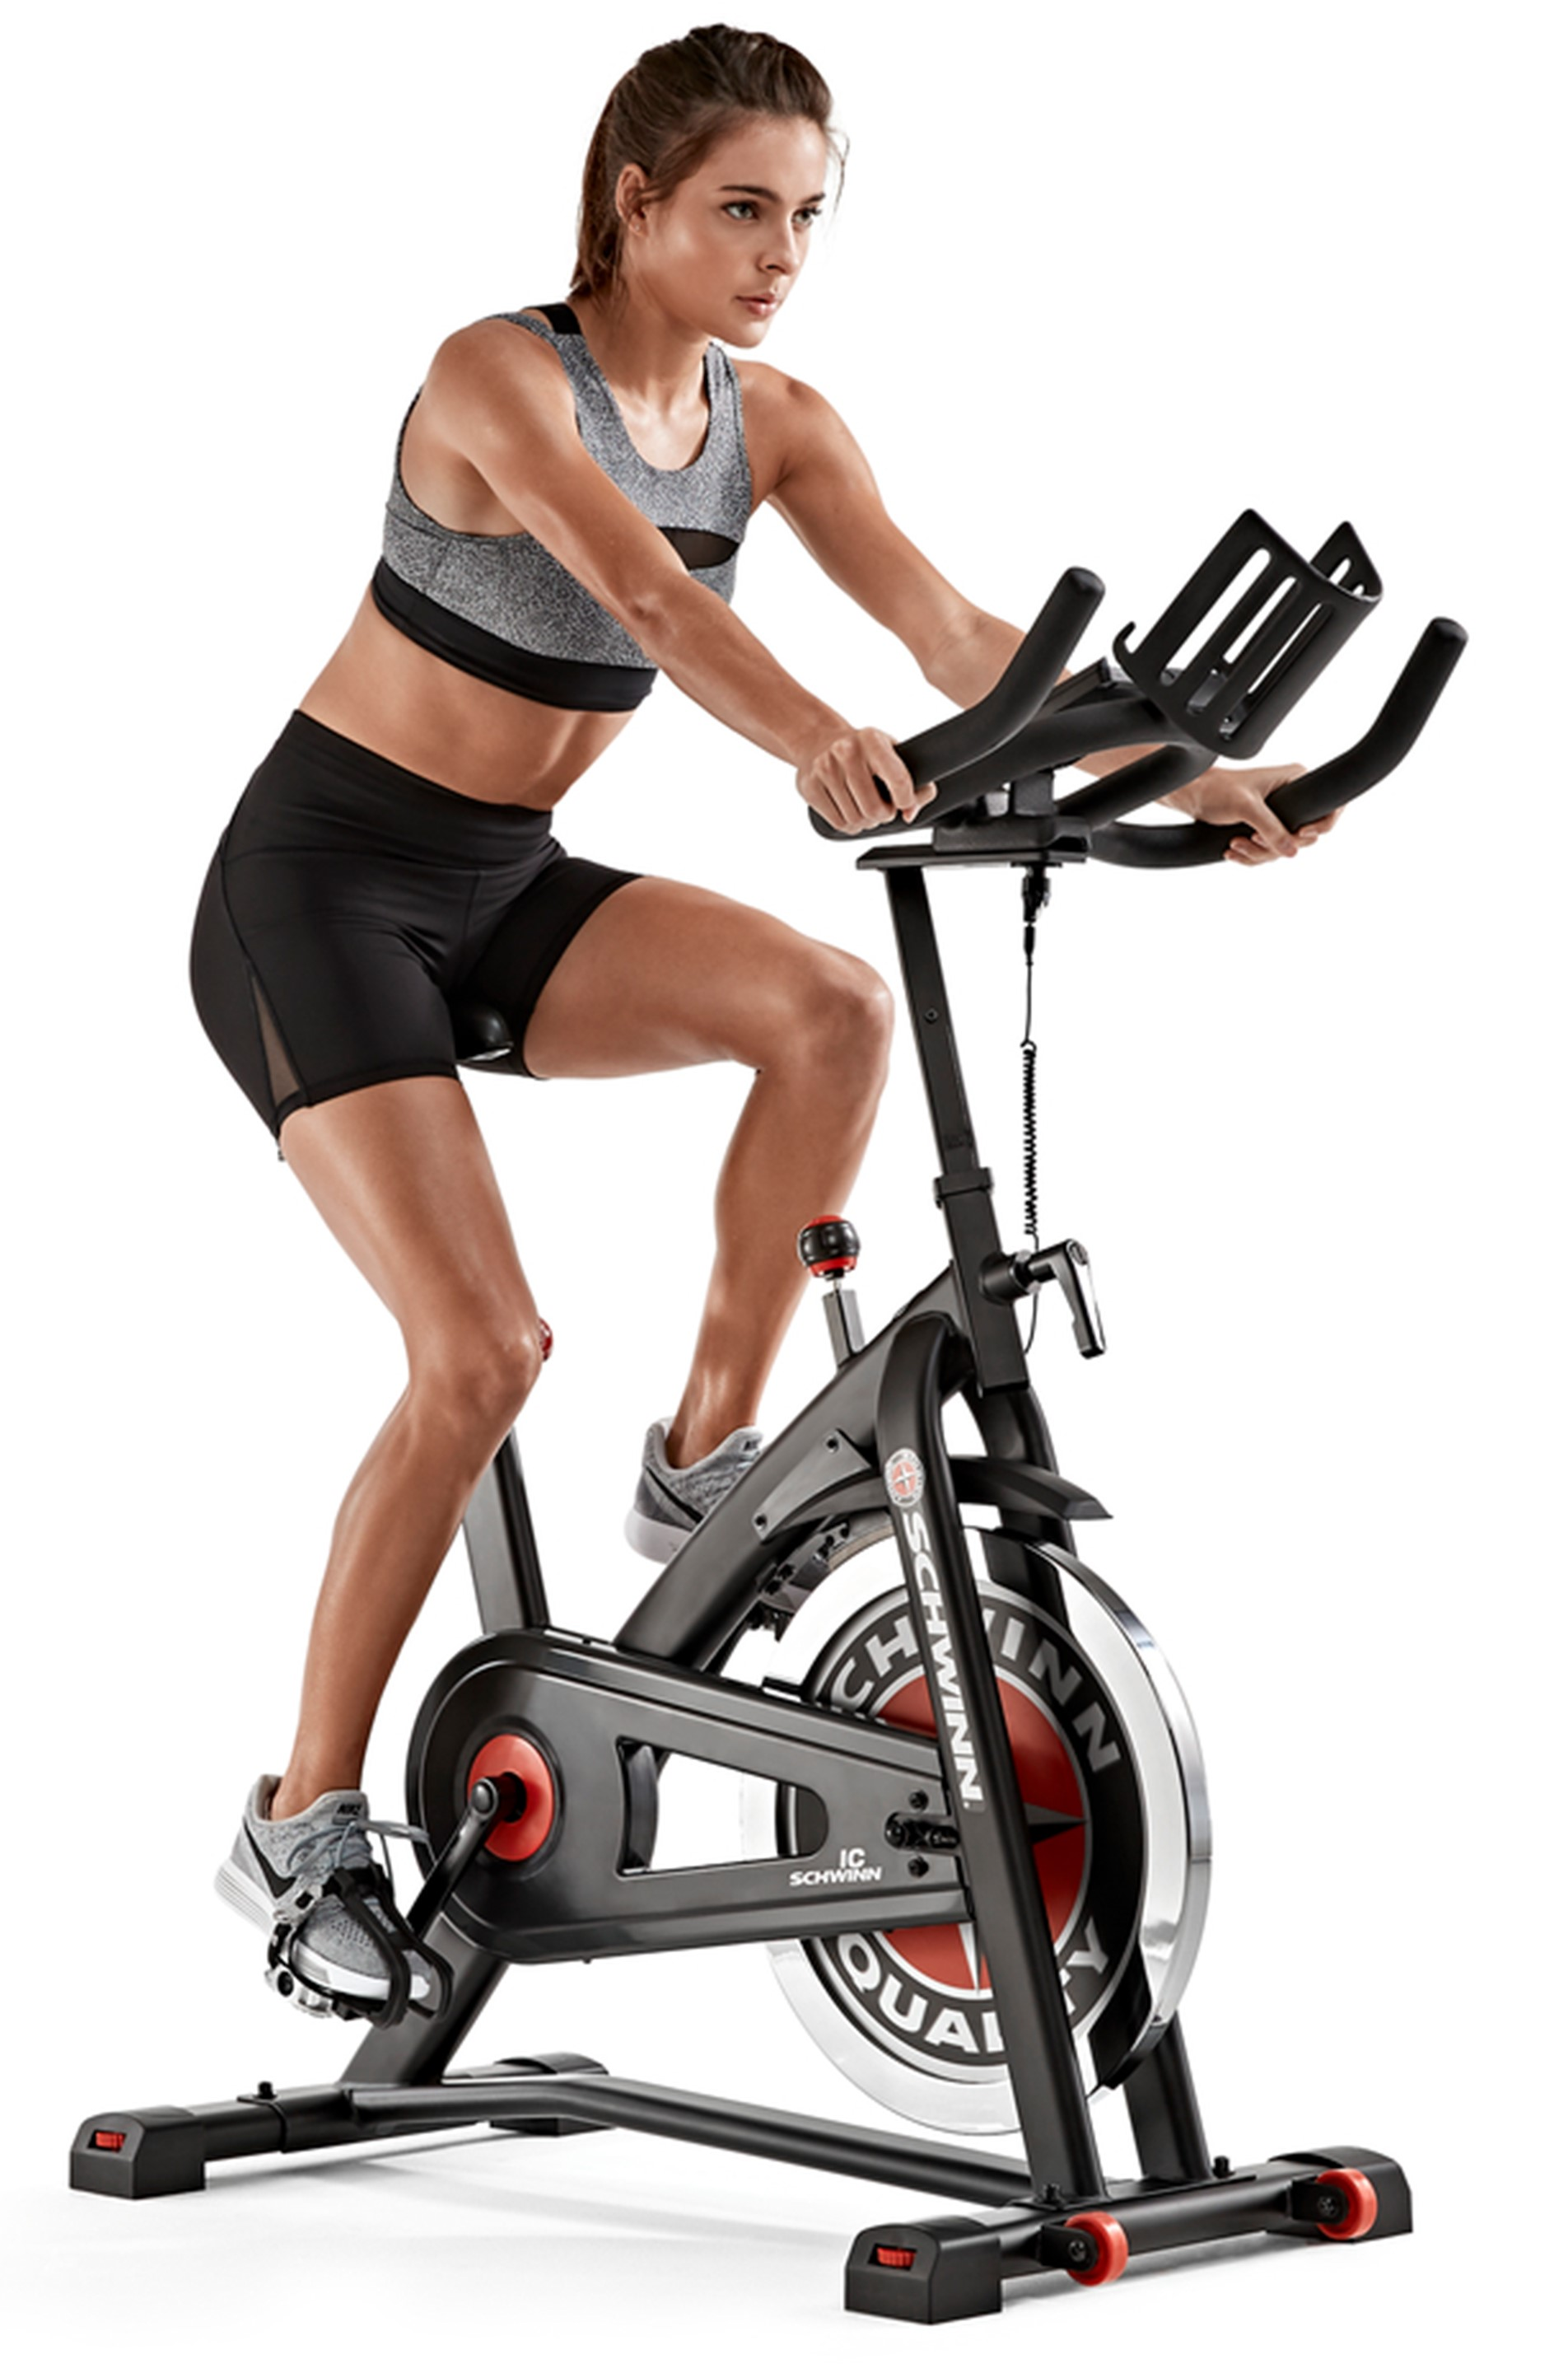 Exercise Bikes | Upright Exercise | Recumbent | Indoor Cycling